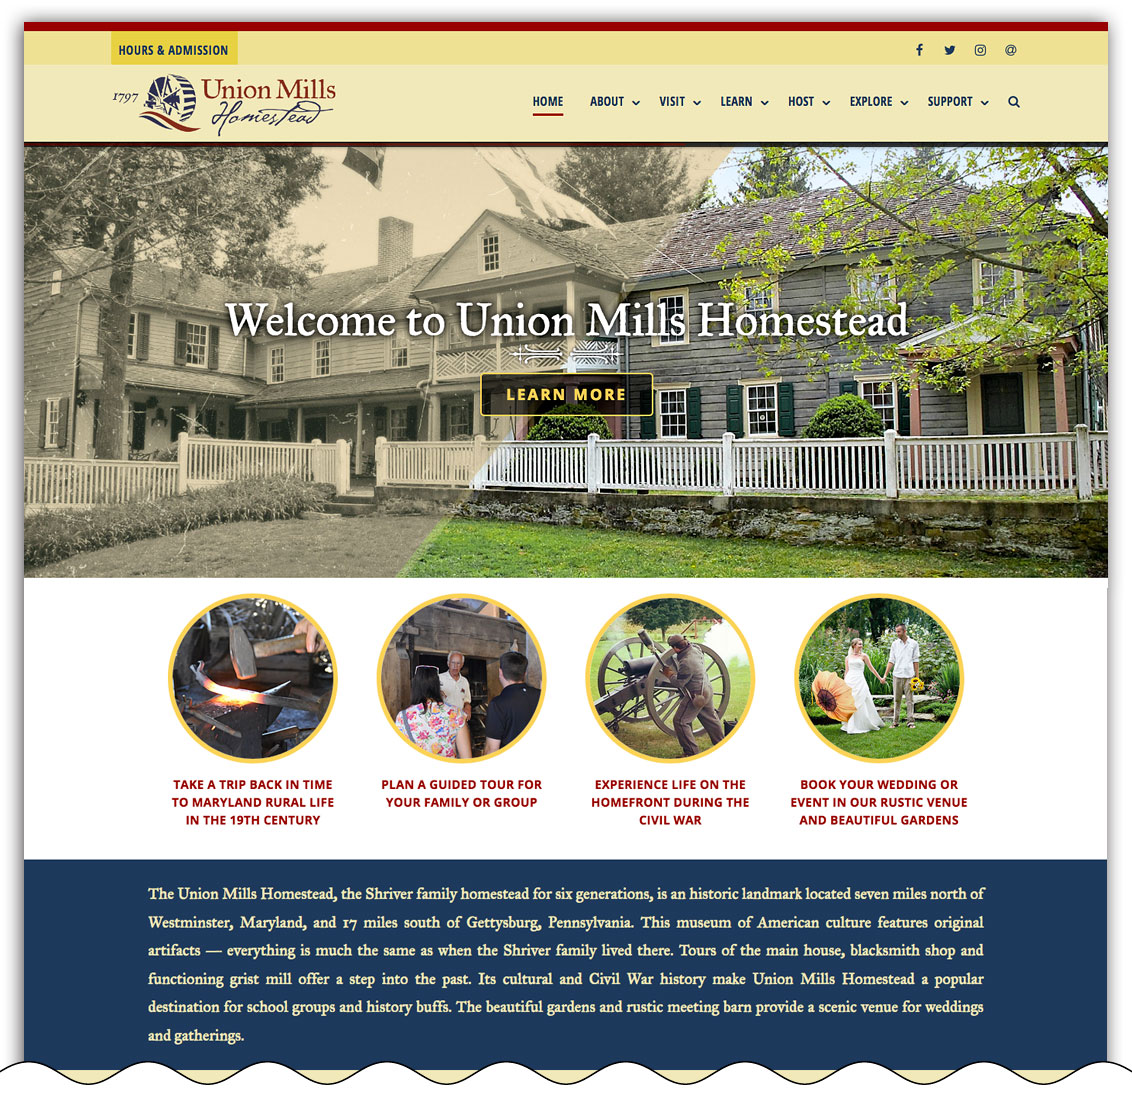 Union Mills Homestead home page